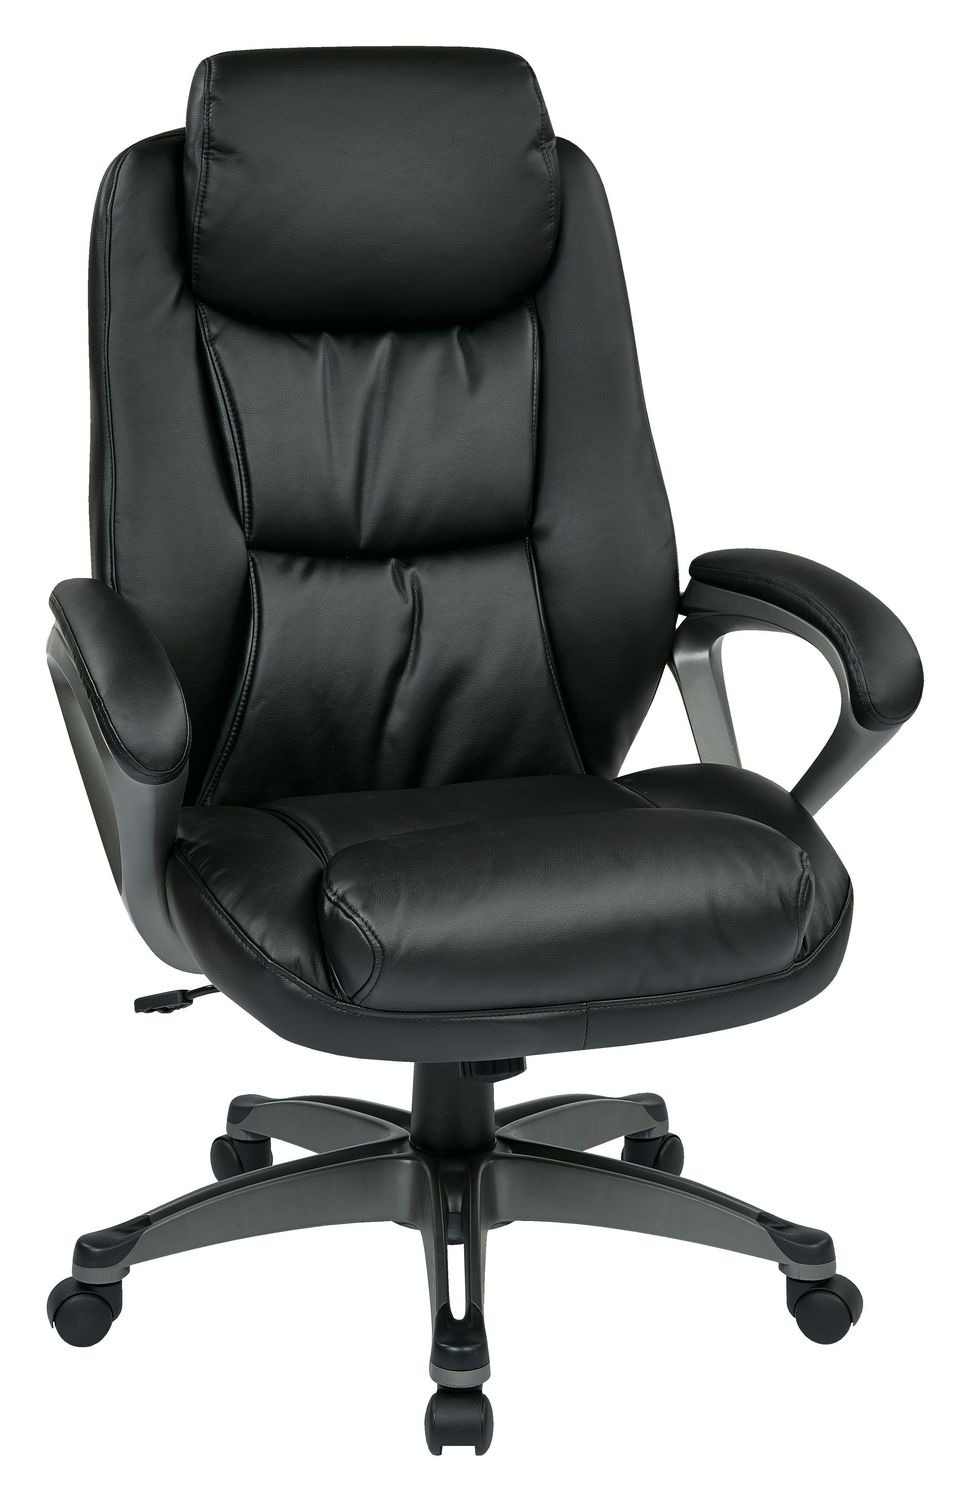 Executive Leather Chair Work Smartblack Executive Bonded Leather Chair With Padded Arms